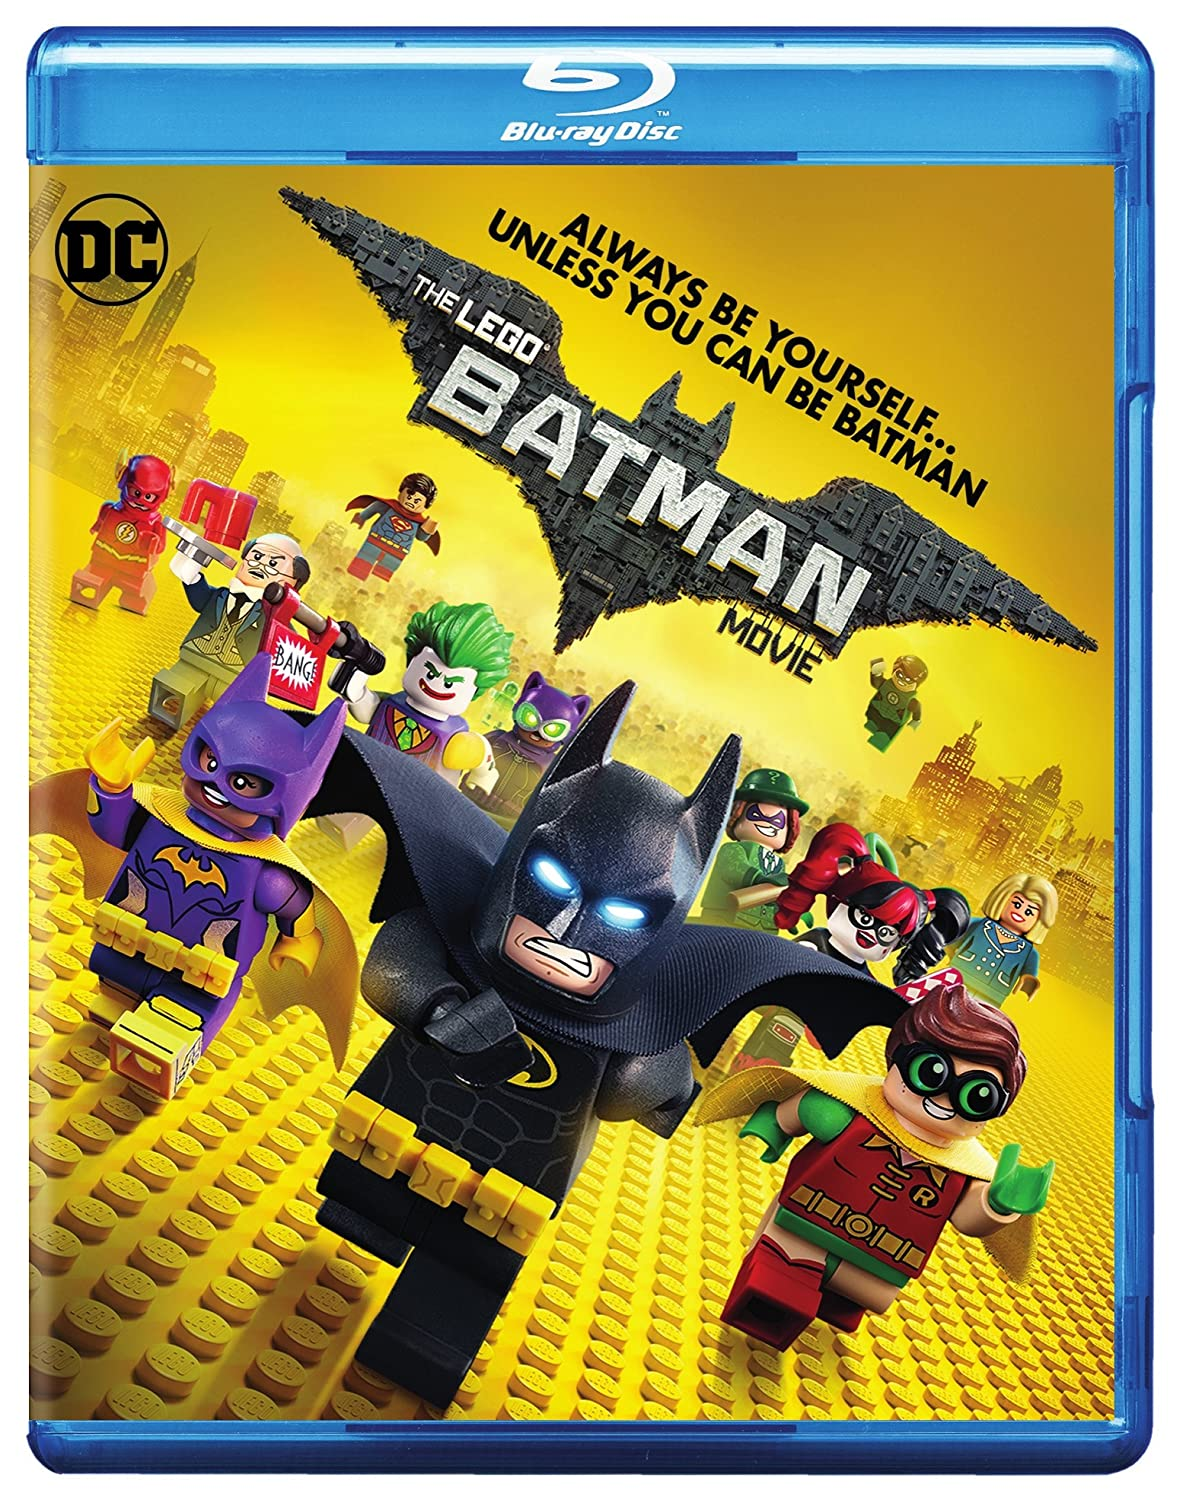 Amazon Com Lego Batman Movie The Blu Ray Bd Will Arnett Zach Galifianakis Michael Cera Rosario Dawson Ralph Fiennes Chris Mckay Matthew Ashton Dan Lin Jill Wilfert Will Allegra Phil Lord Christopher Miller John